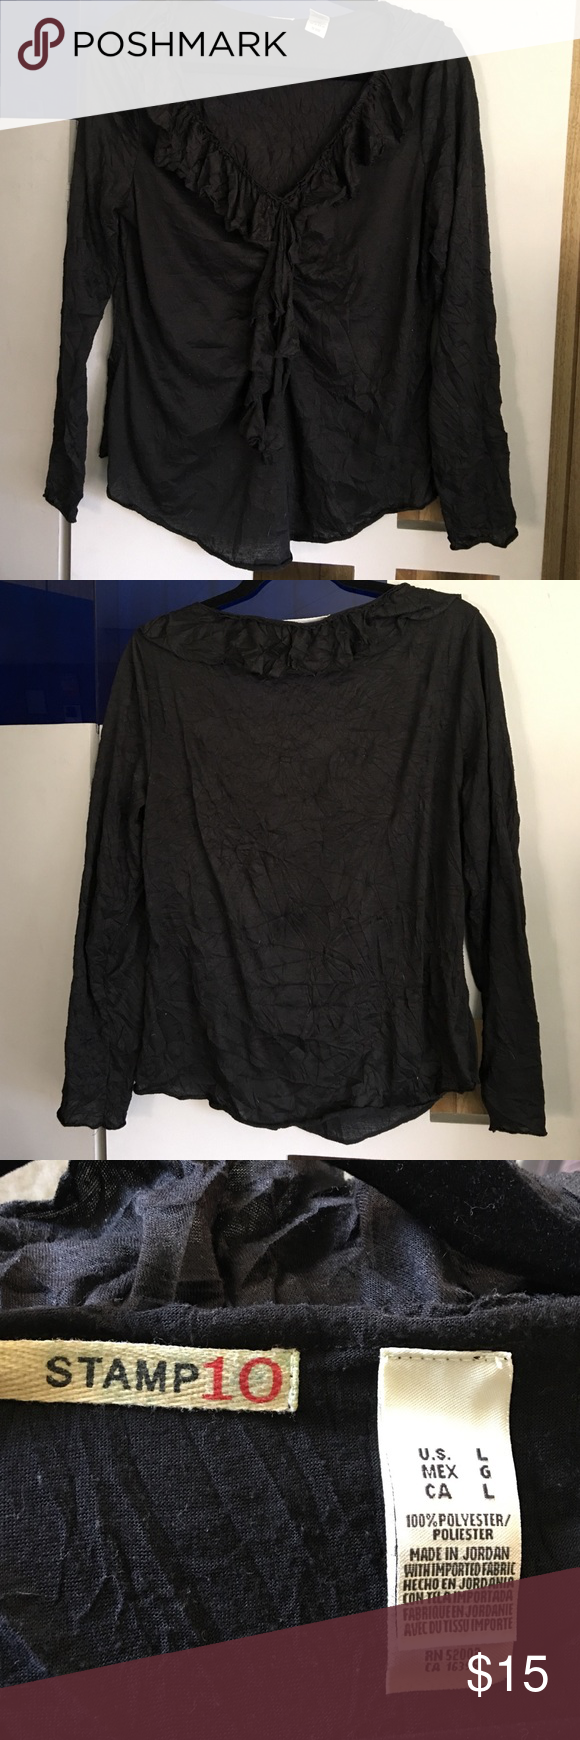 Black ruffly blouse Black ruffly blouse and does stretch. Crinkle look. 100% polyester size large. Made by stamp 10. Great to rock with boots! Stamp 10 Tops Blouses